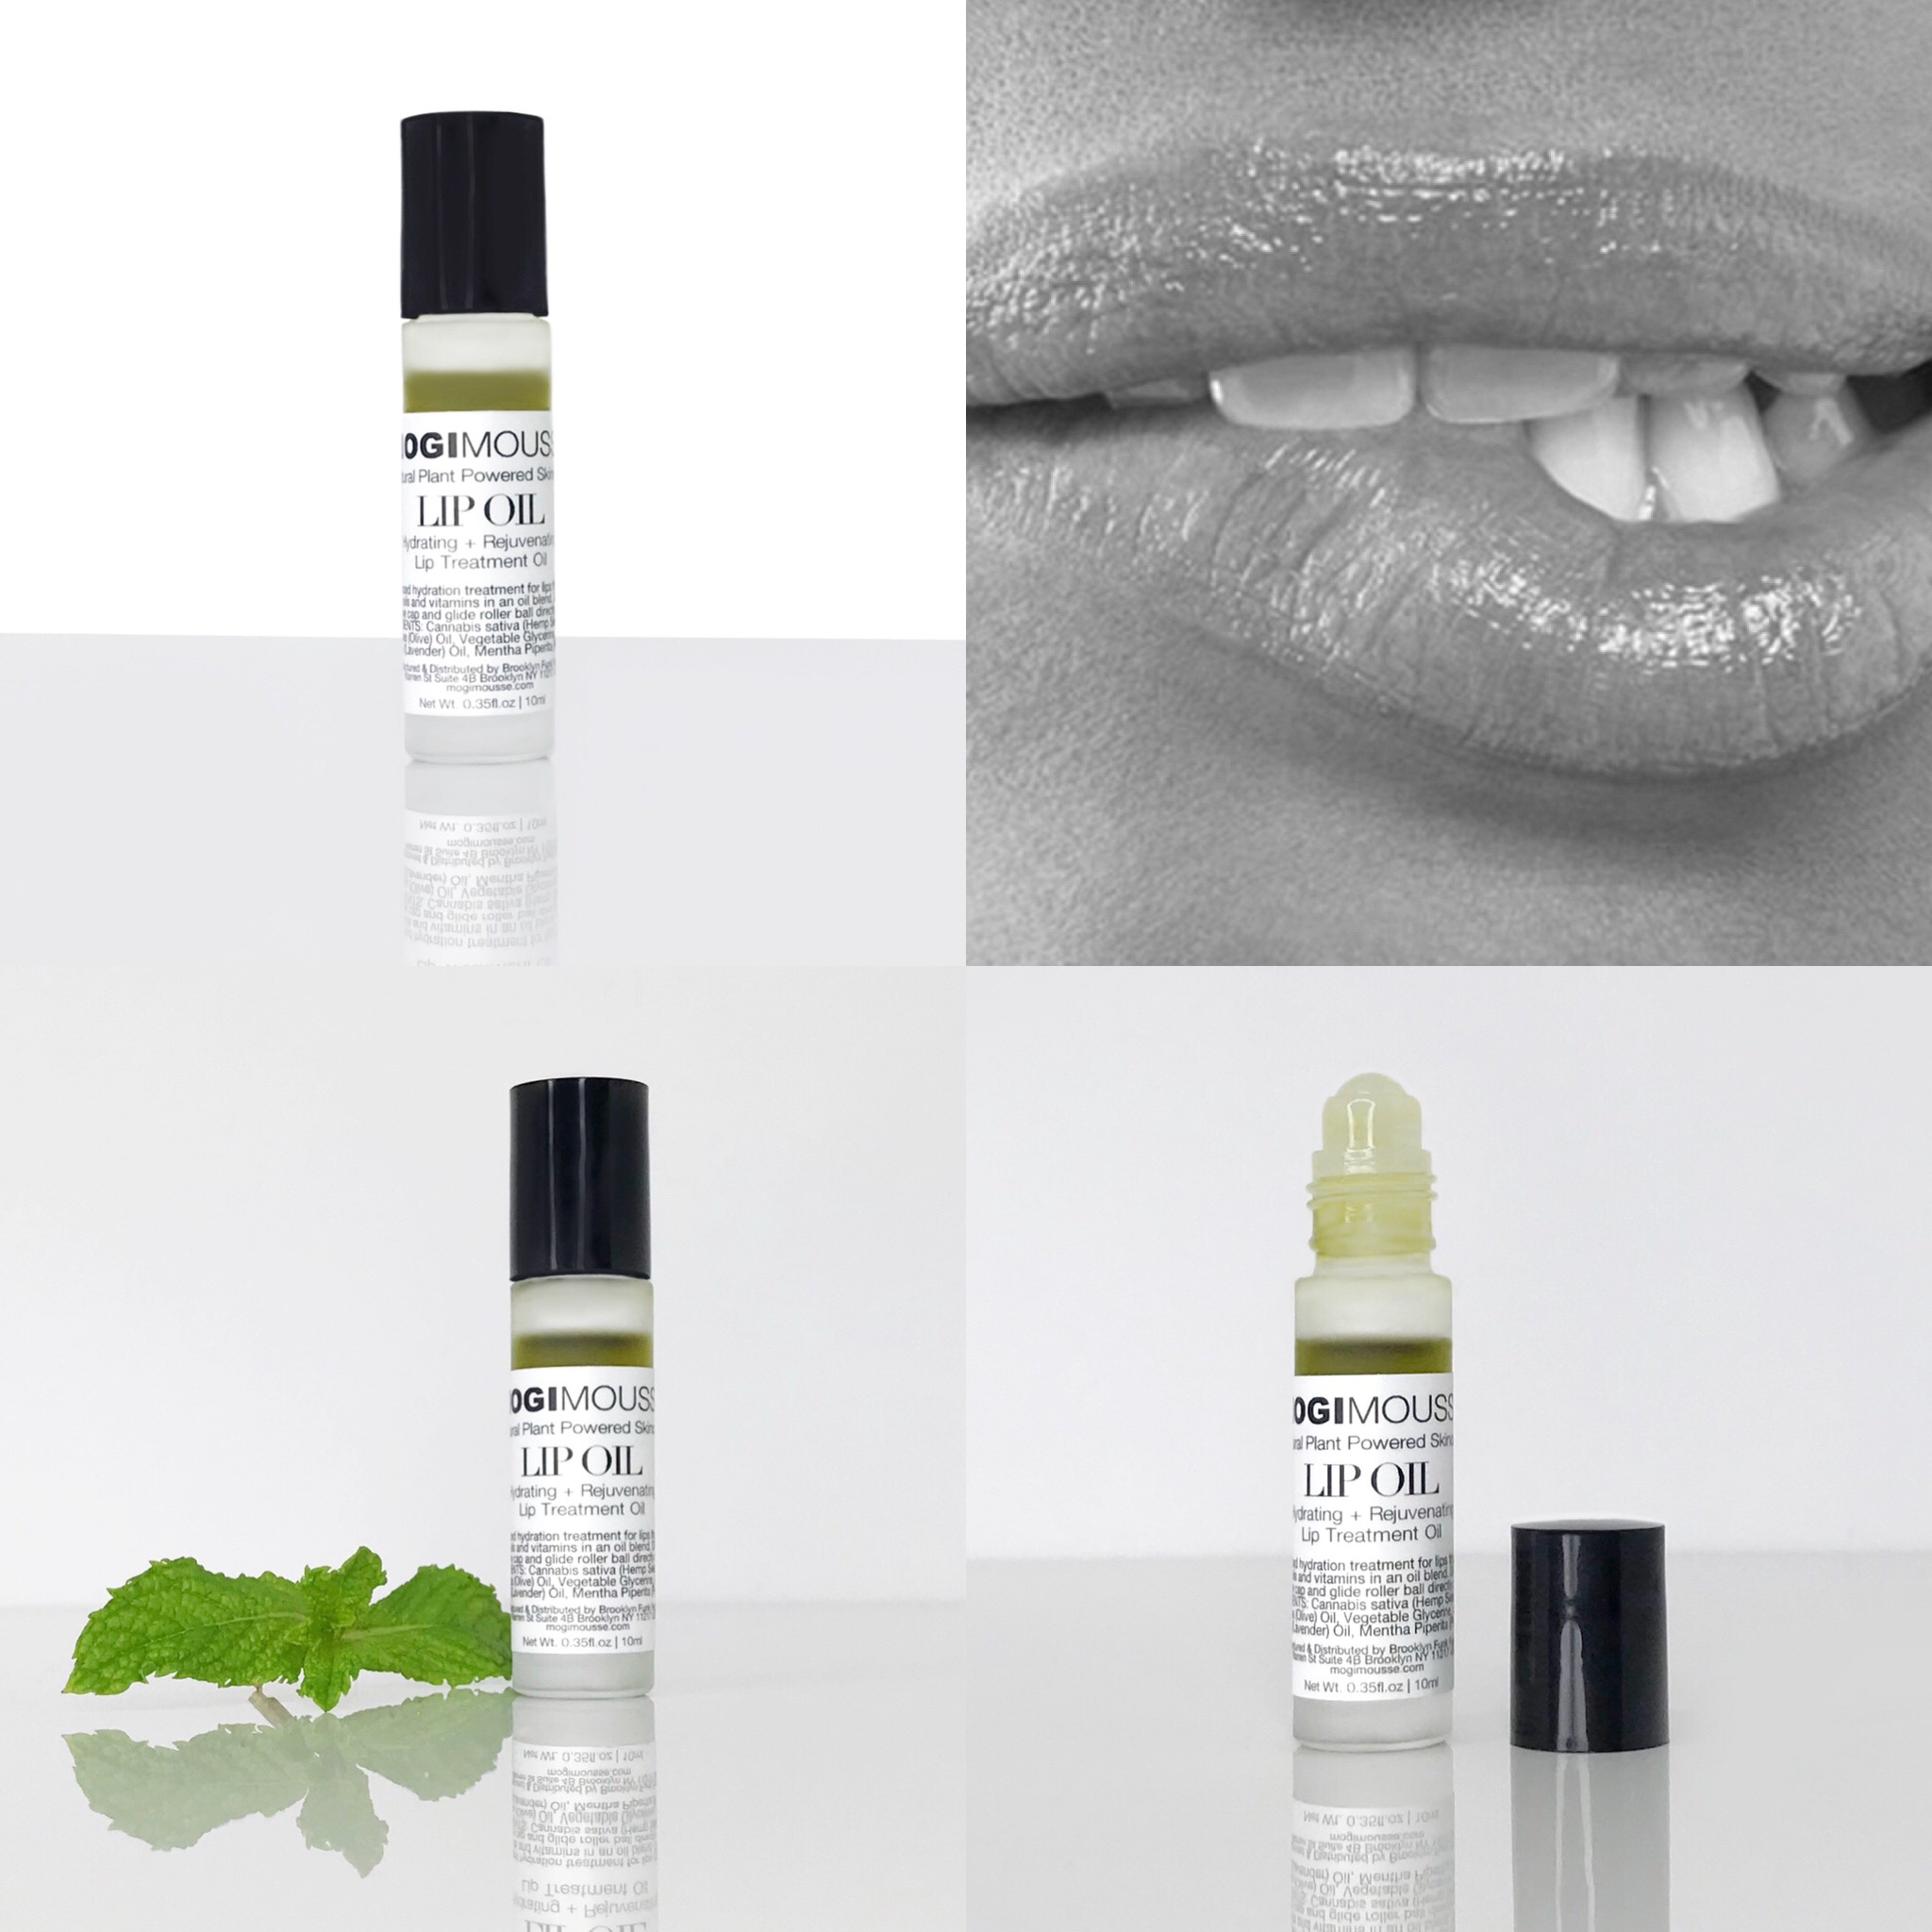 We are happy to announce the launch of our Lip Treatment Oil: MOGI MOUSSE® Lip Oil is an all natural, vegan, and cruelty-free product. Our 100% plant based lip treatment oil is packed with antioxidants, a blend of precious, nourishing pure oils that help heal, repair, and protect your lips. It is water free and wax free, and offers deep hydration without the stickiness. Enjoy an easy application with our premium glass container with gliding roller ball , and have beautiful soft and smooth lips.